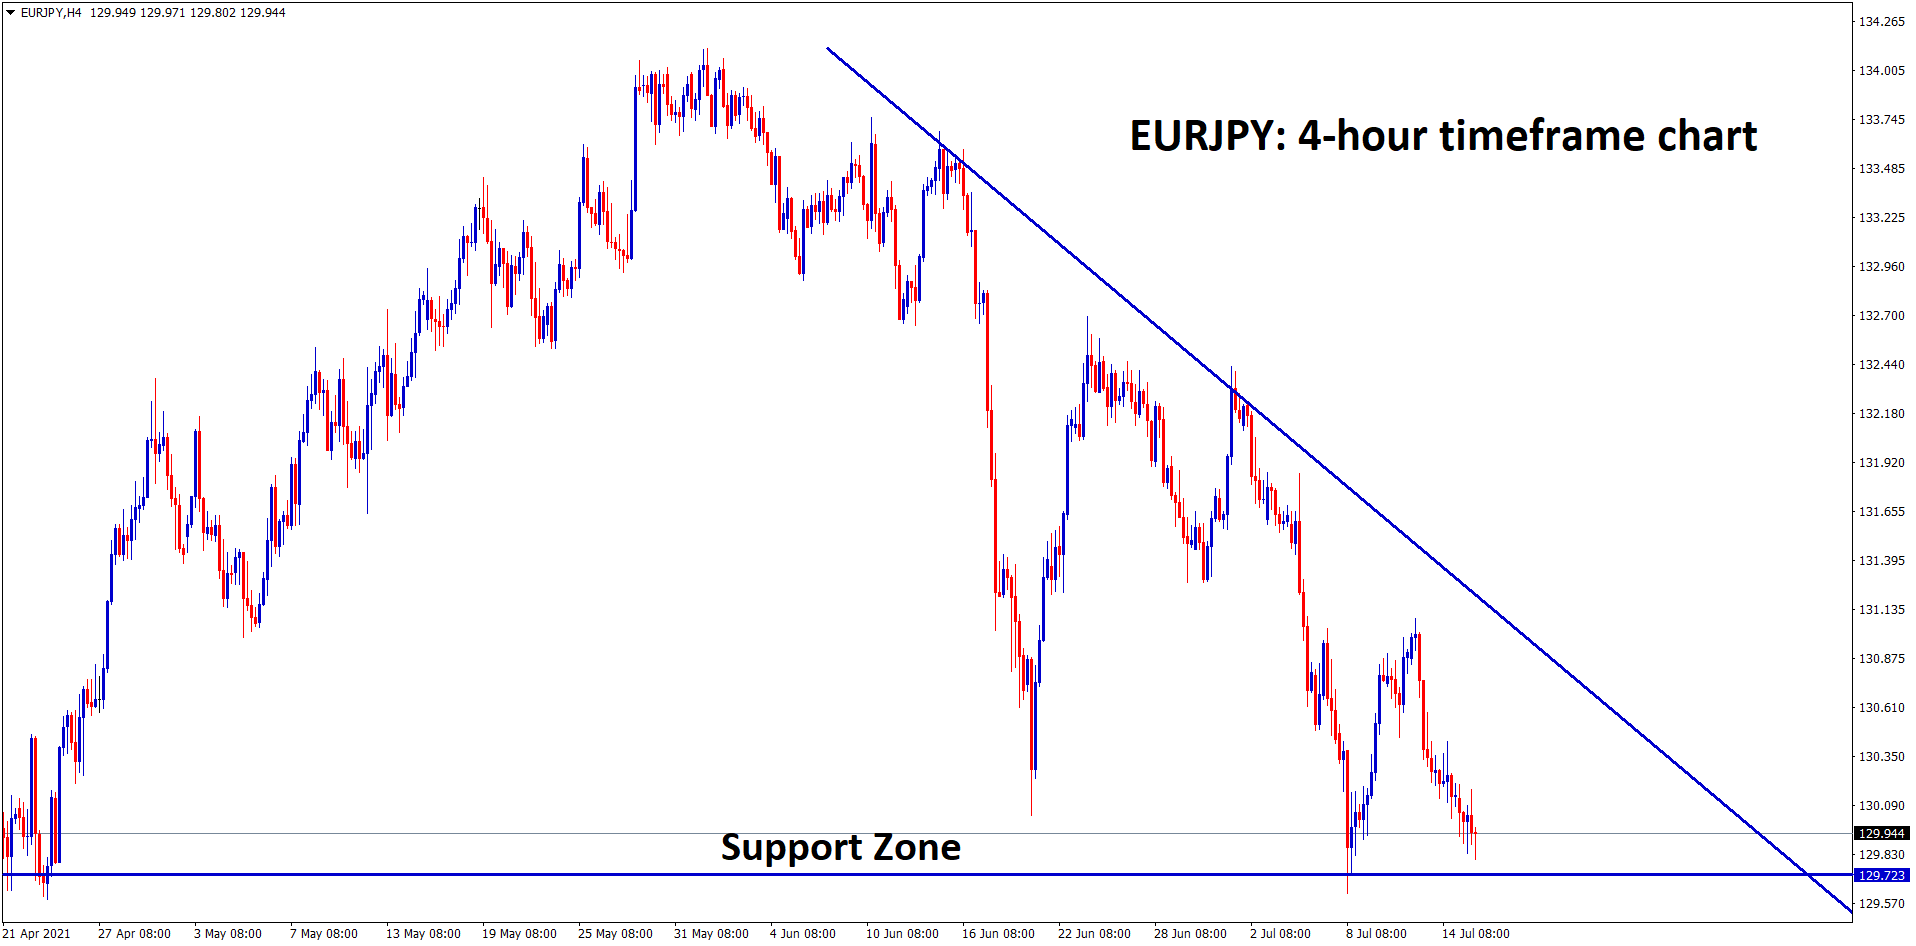 EURJPY landed to the support zone in the 4 hour timeframe chart